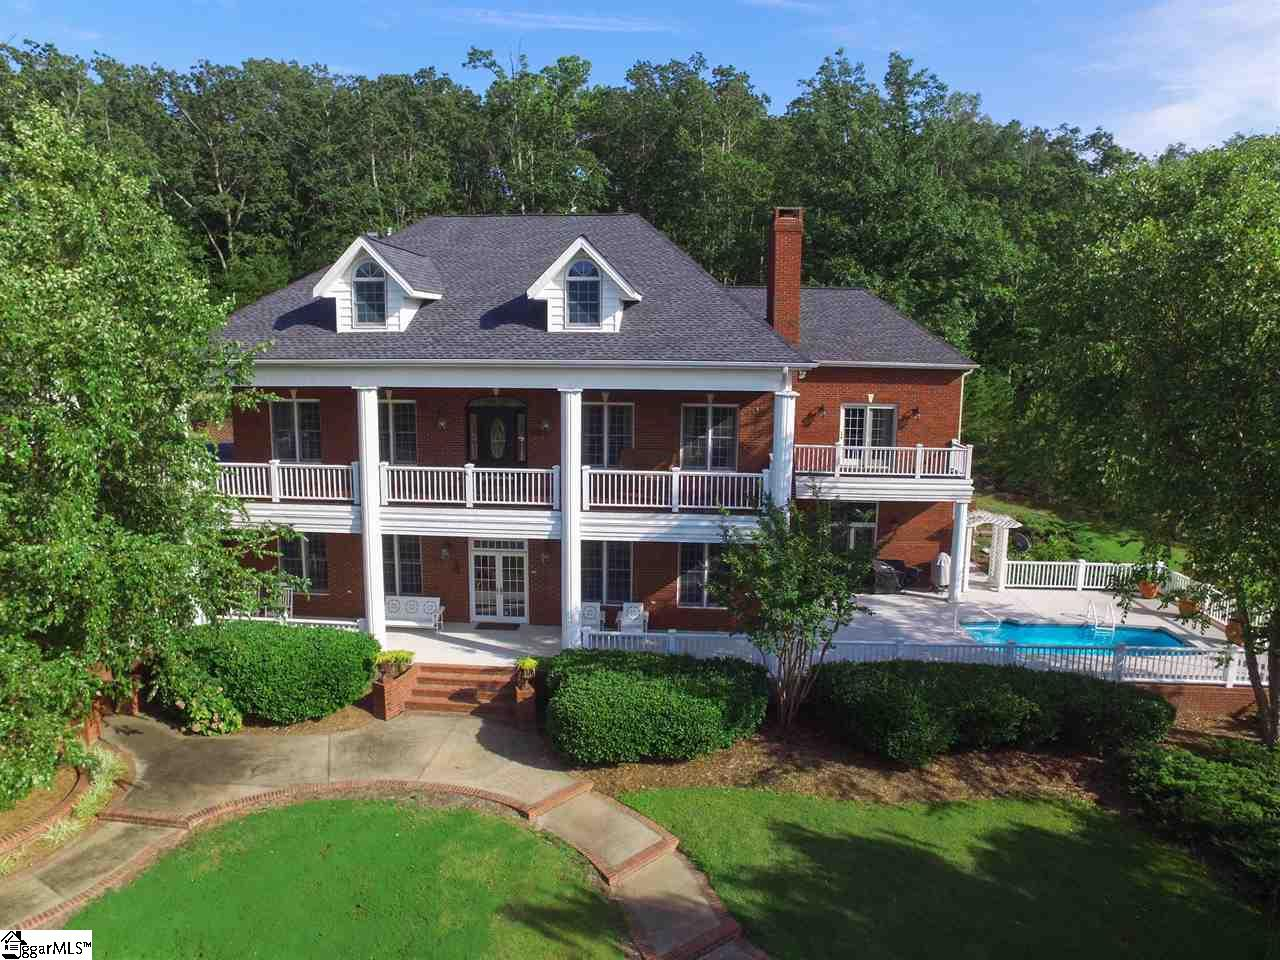 600 N Glassy Mountain Landrum, SC 29356